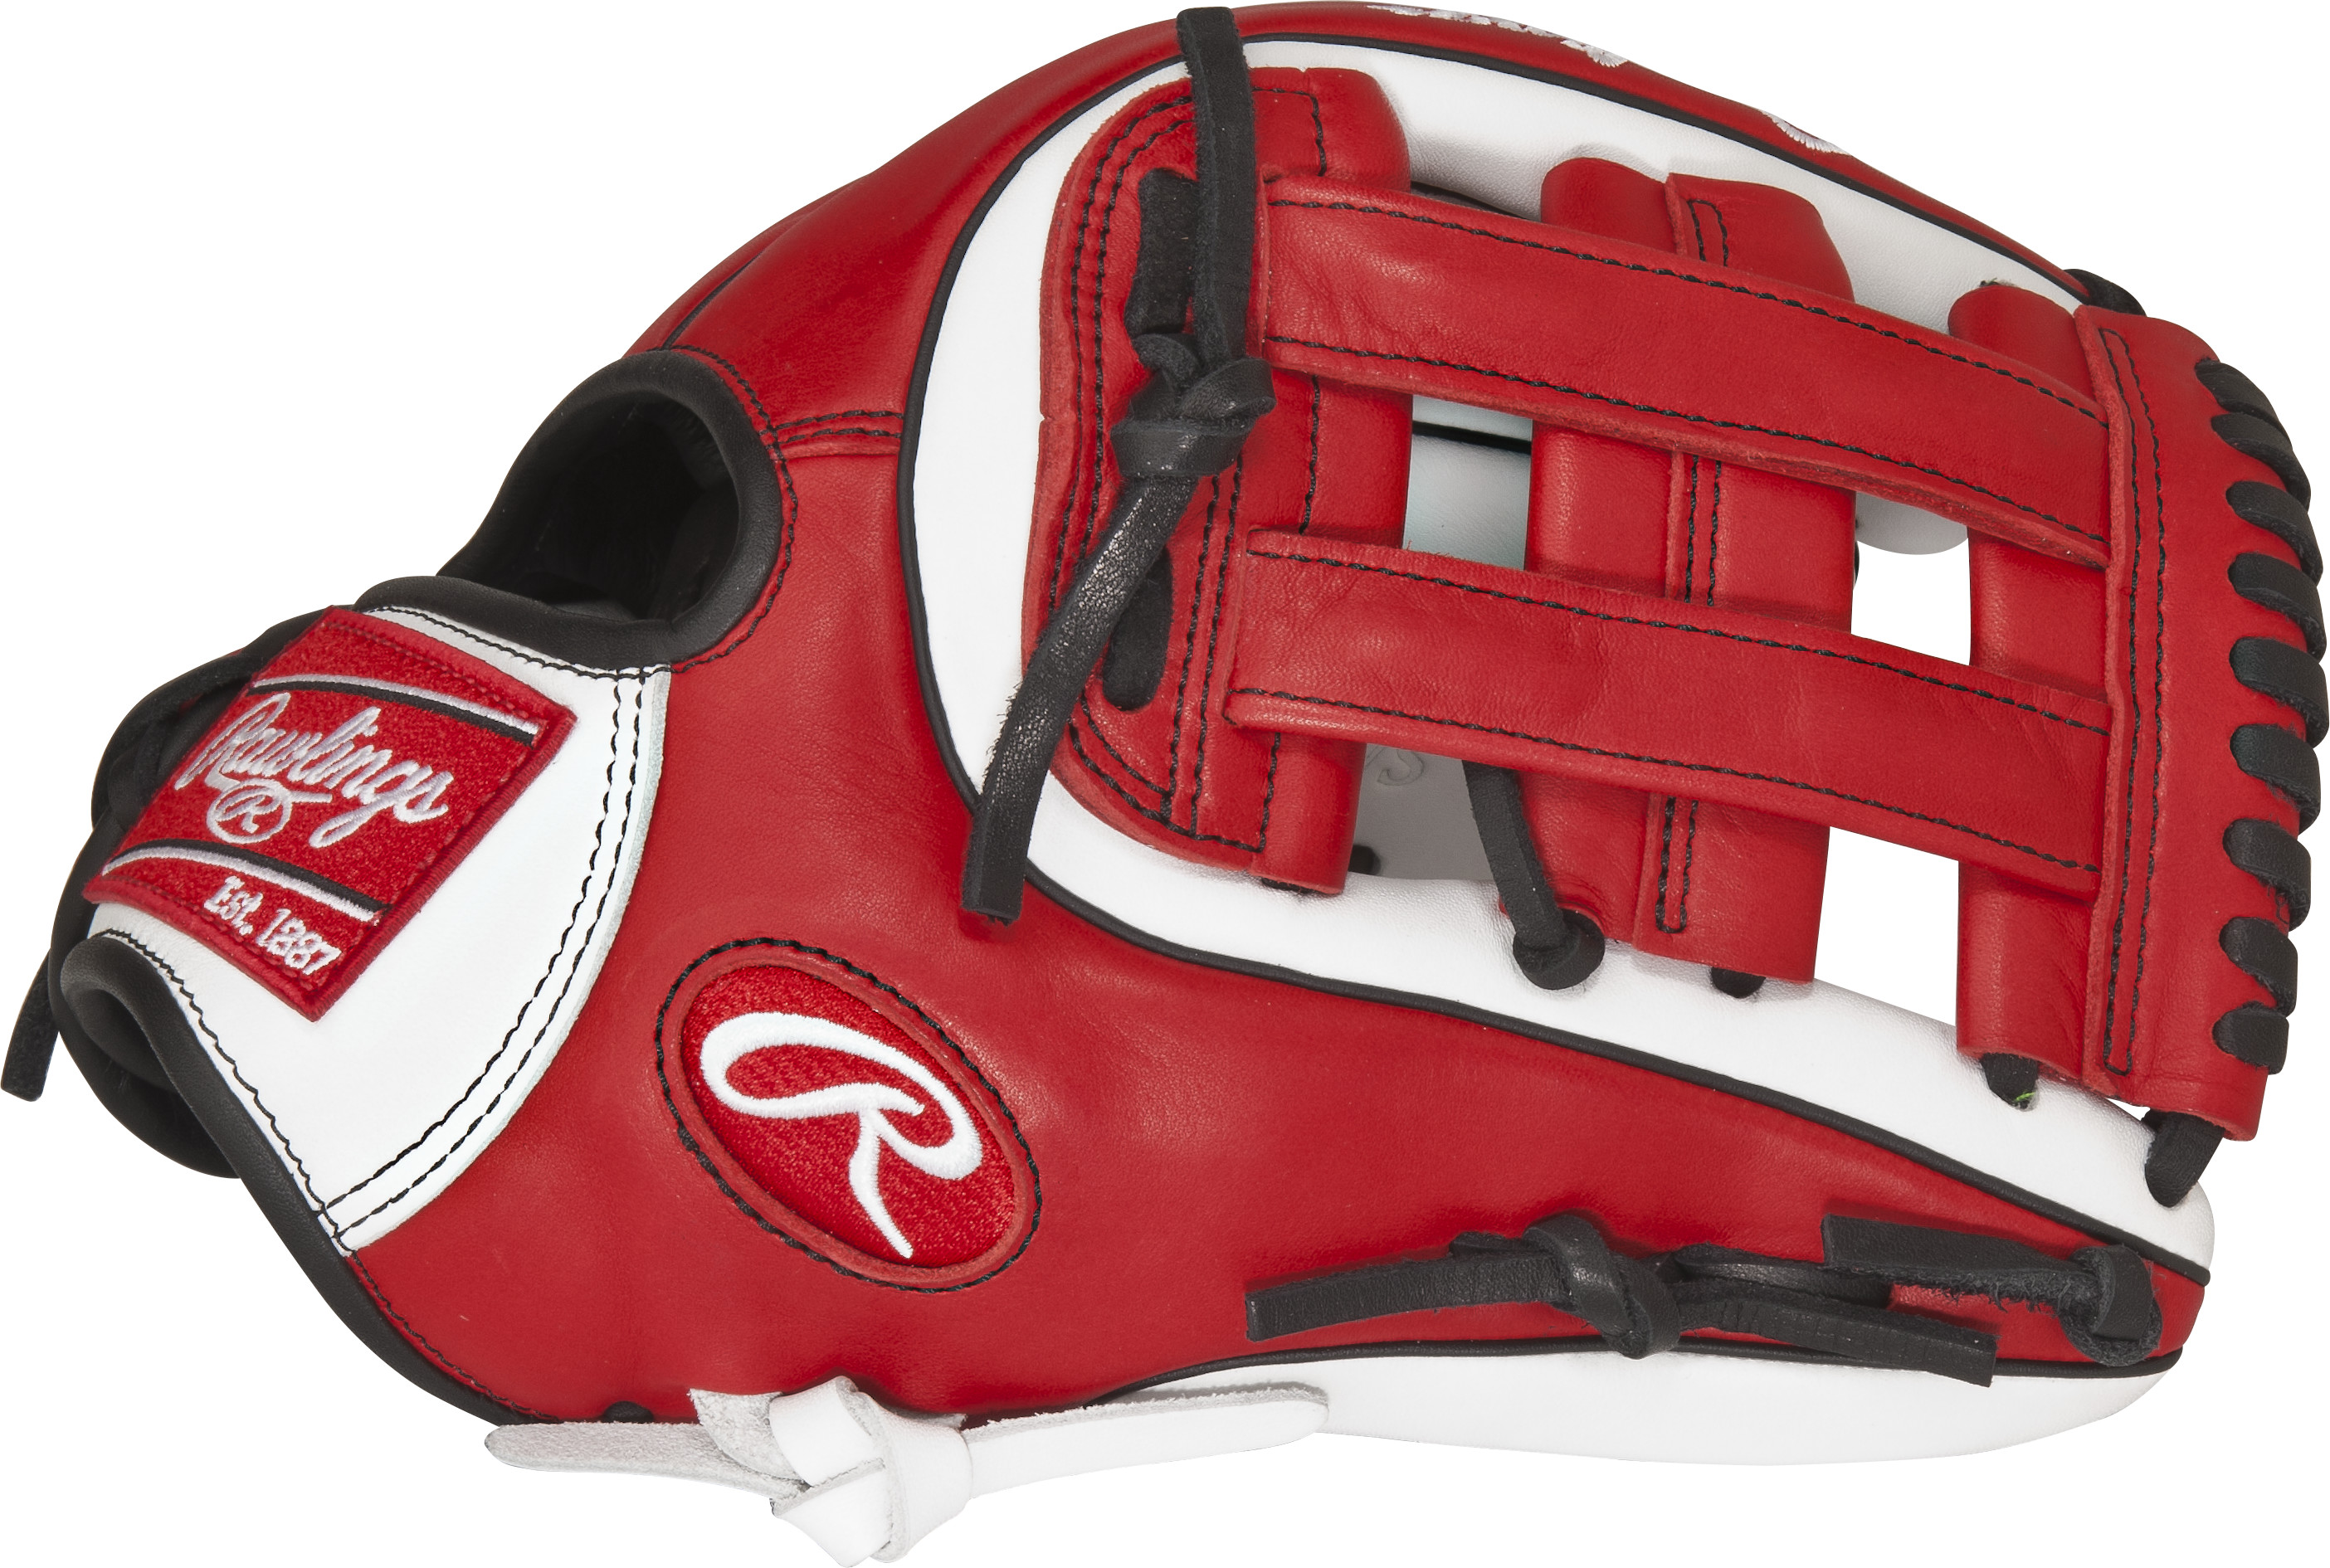 http://www.bestbatdeals.com/images/gloves/rawlings/GXLE315-6WS_thumb.jpg